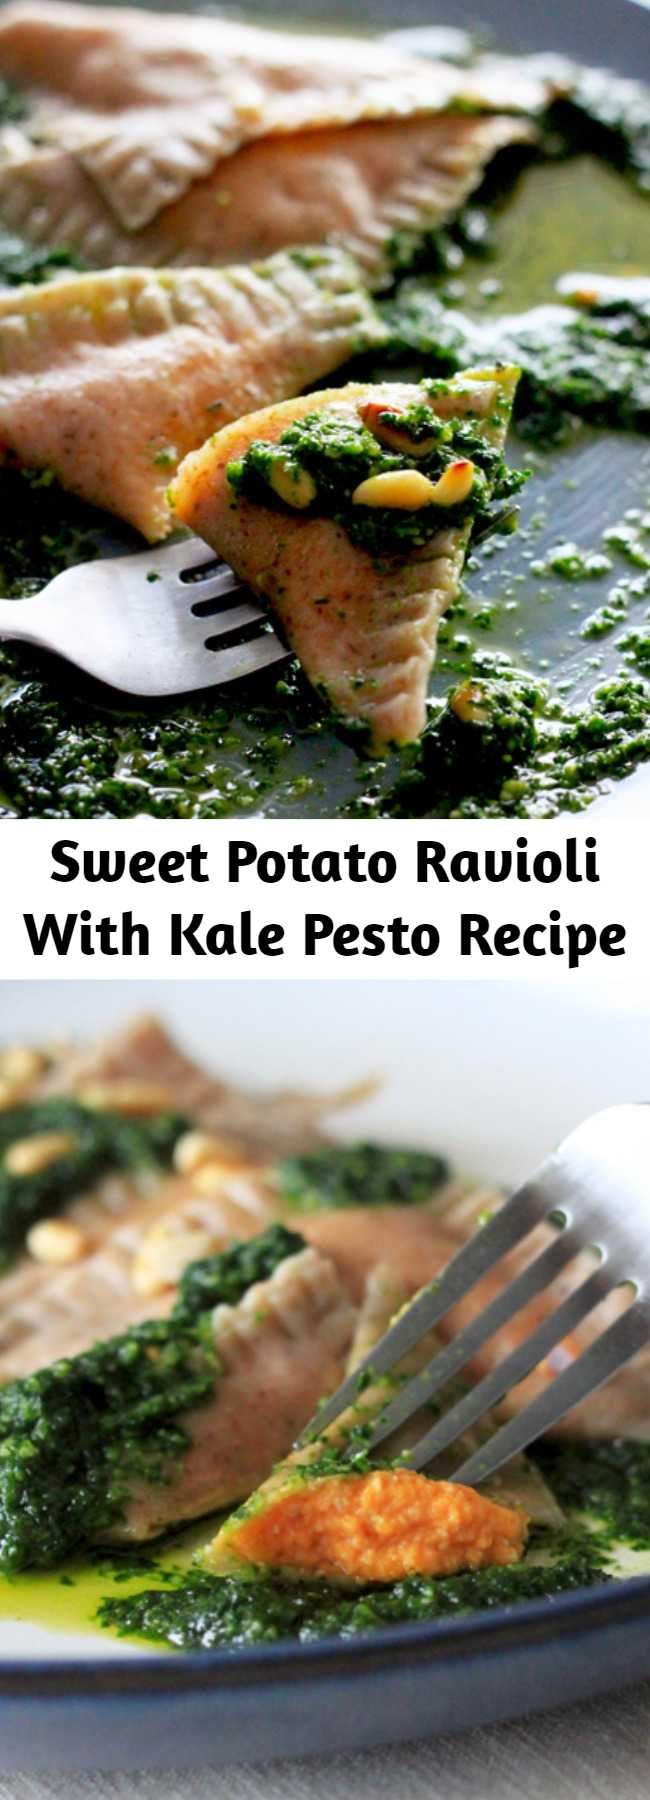 Sweet Potato Ravioli With Kale Pesto Recipe - This recipe uses a whole cup of pine nuts. I know they can be expensive, so feel free to swap in the nuts/seeds of your choosing (walnuts would be delicious). Most grocery stores carry decent quality fresh lasagna sheets in the refrigerated section if you don't have a pasta roller at home (or don't feel like making an extra hour of work for yourself). #healthy #dinner #recipe